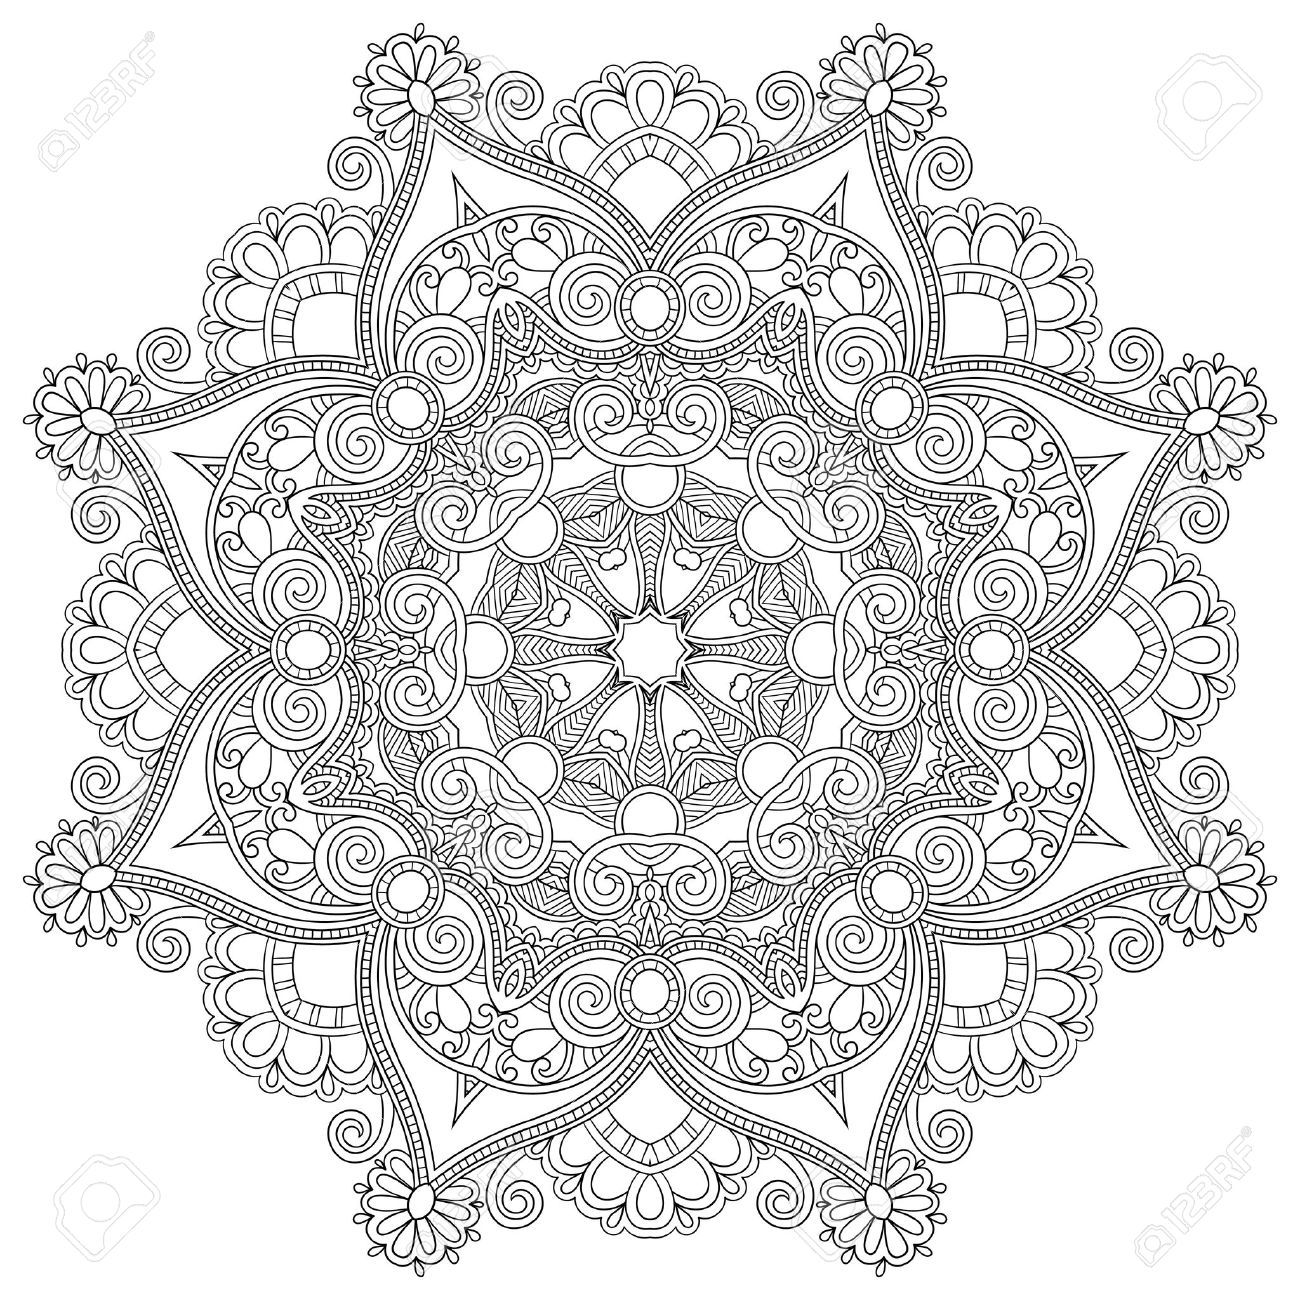 lace coloring pages - geometric mandala google search arm tattoo pinterest